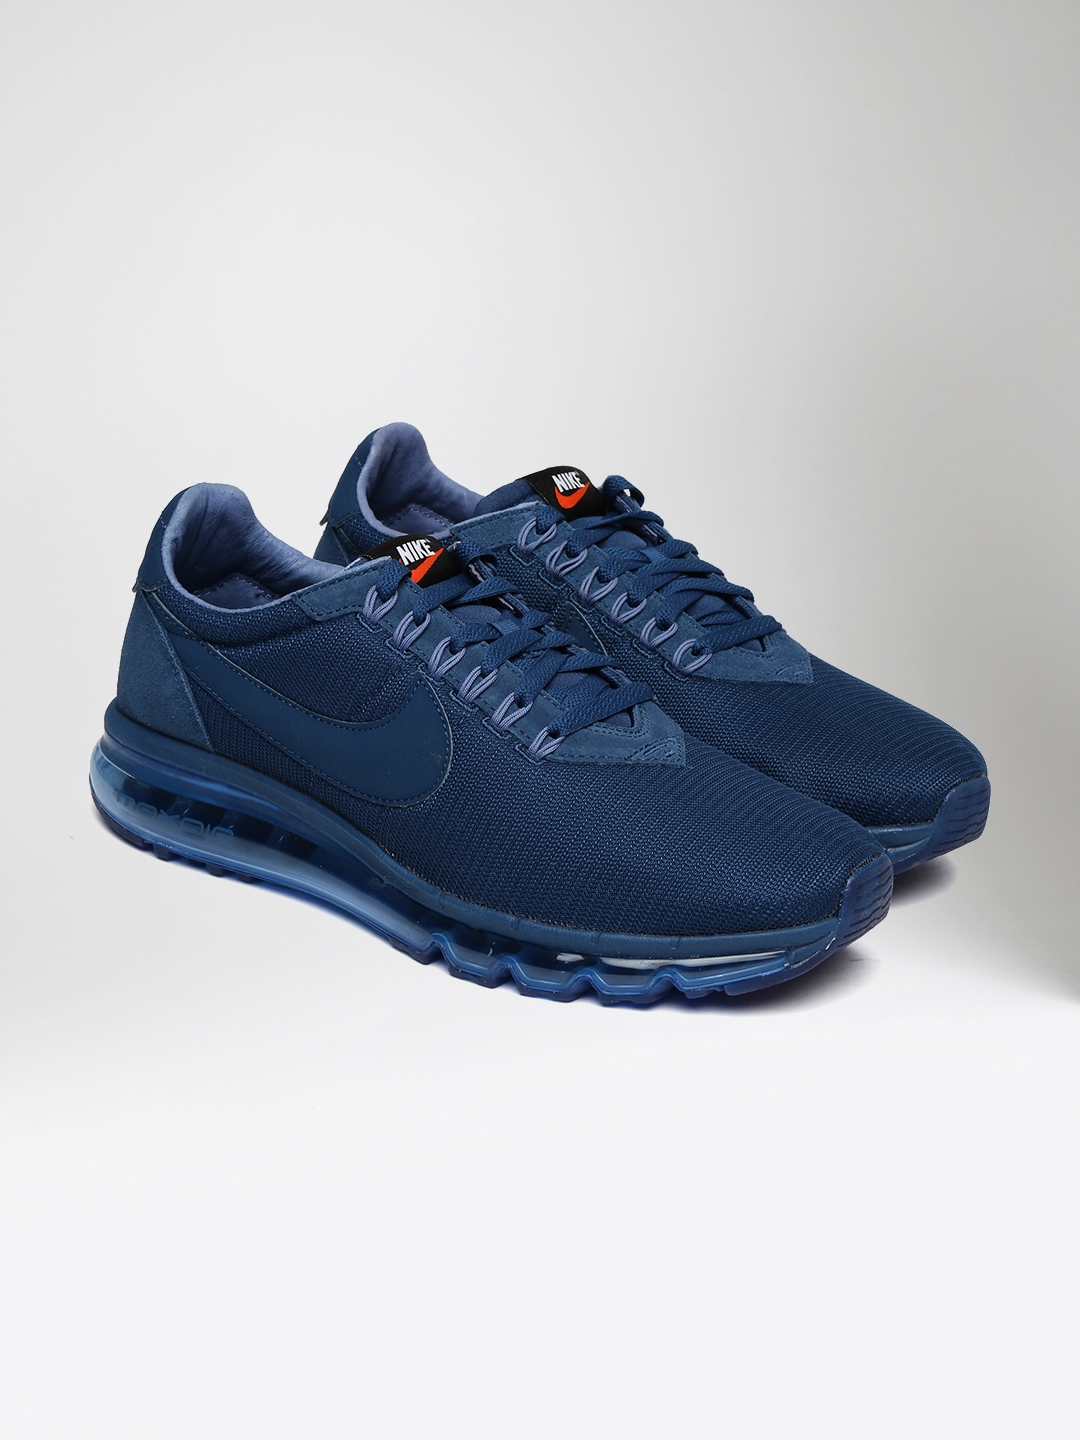 buy online 4a644 f27bb Buy Nike Men Blue AIR MAX LD ZERO Sneakers - Casual Shoes ...